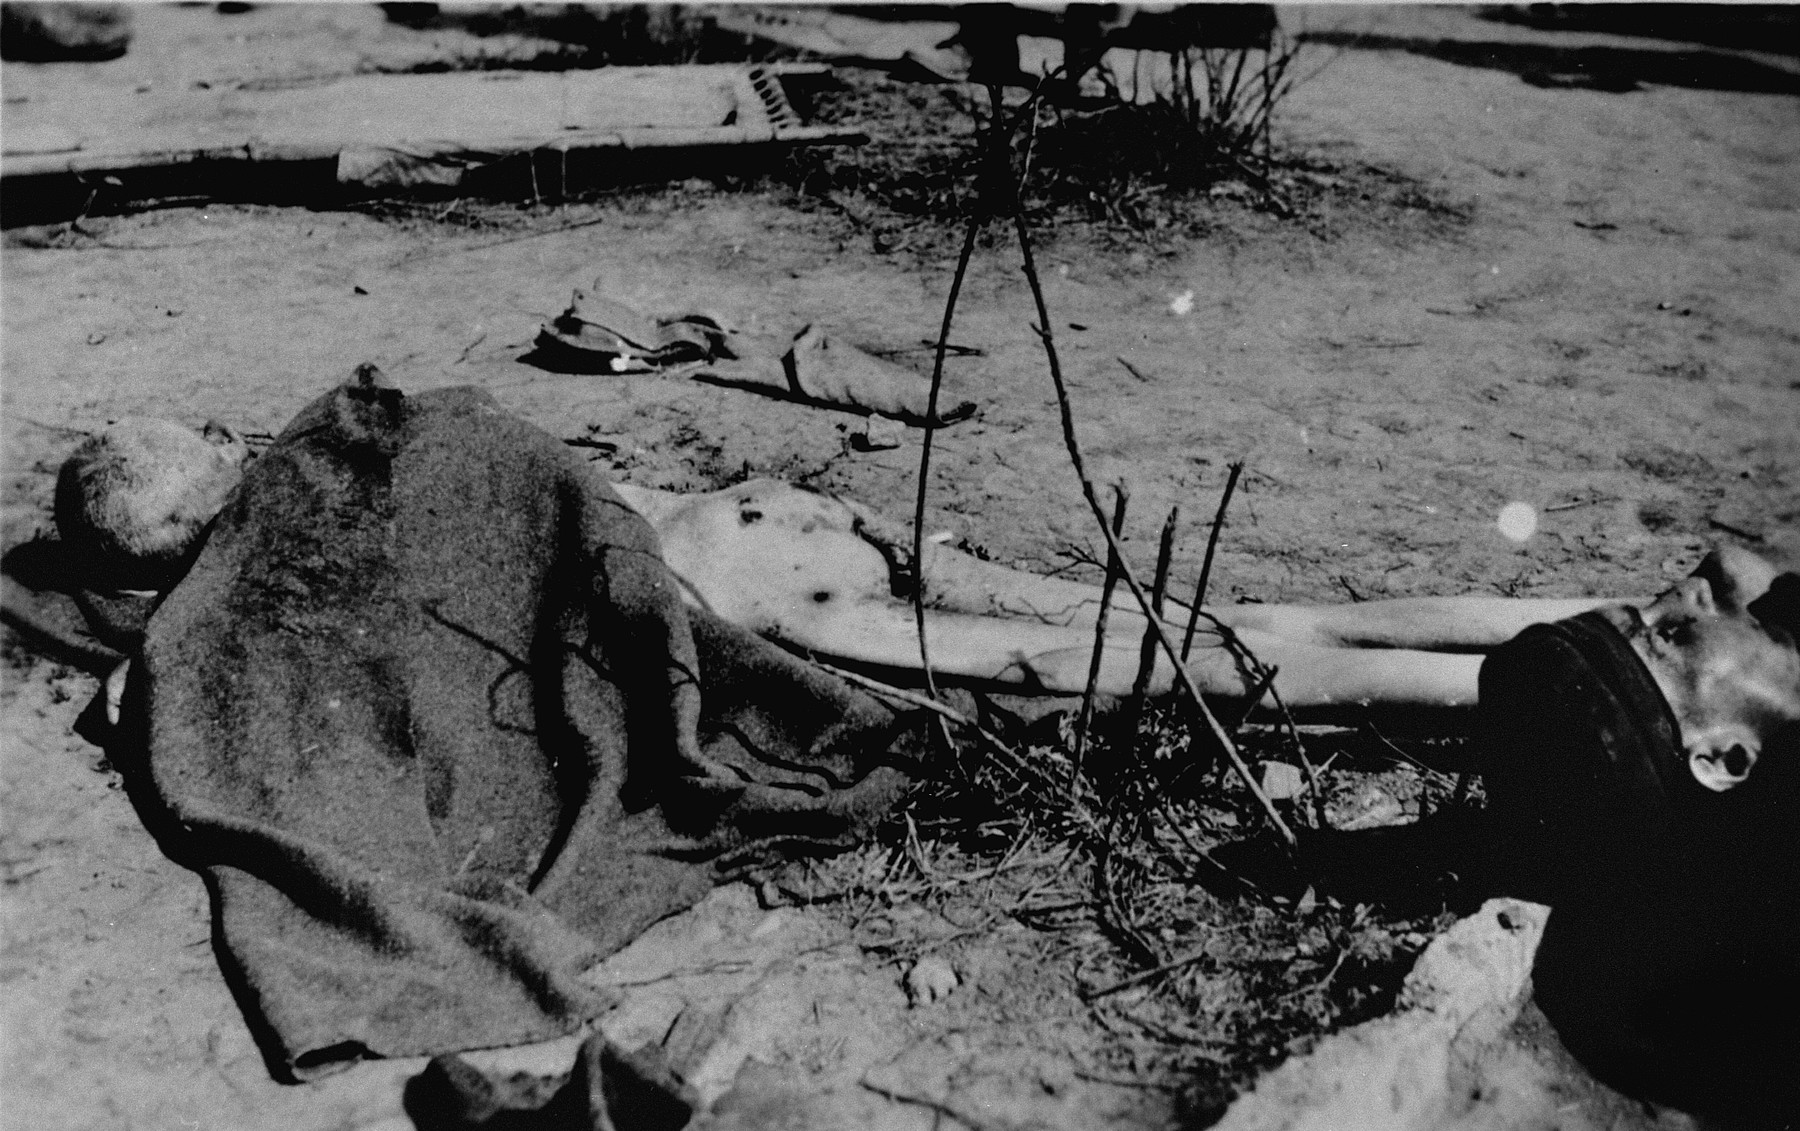 The corpse of a prisoner who was executed just prior to the SS evacuation of Ohrdruf.